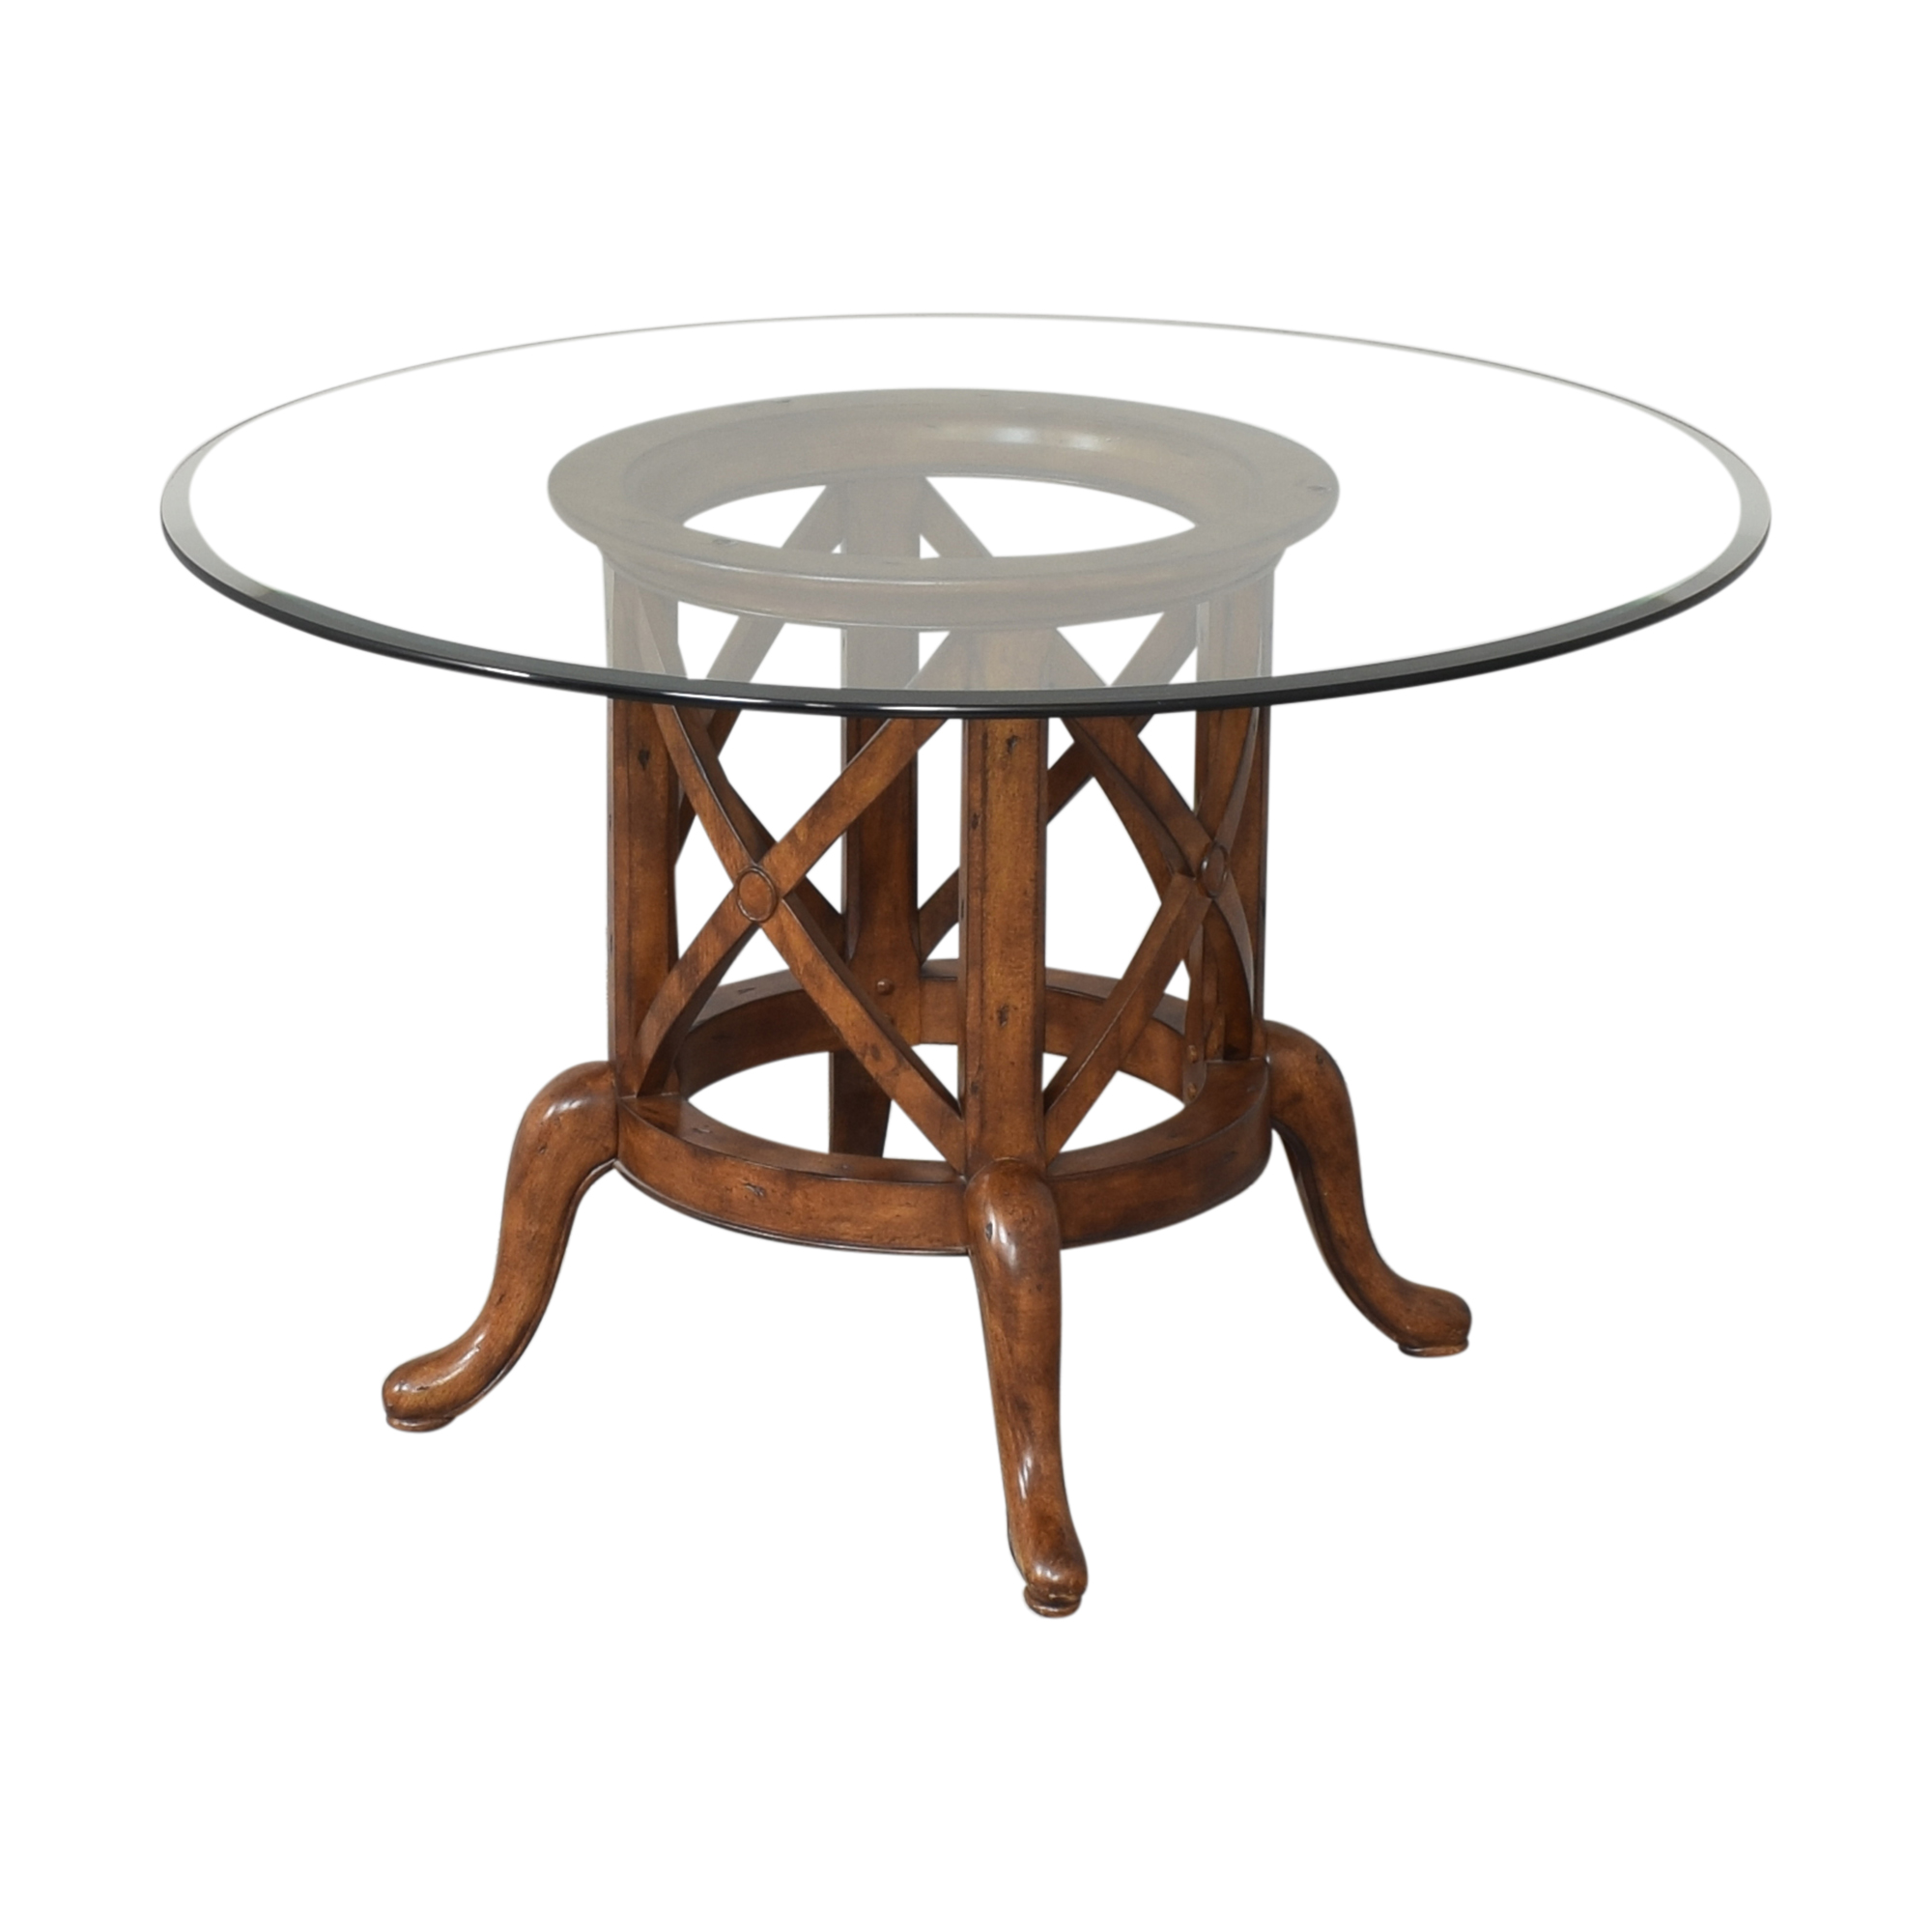 Thomasville Thomasville Round Dining Table coupon